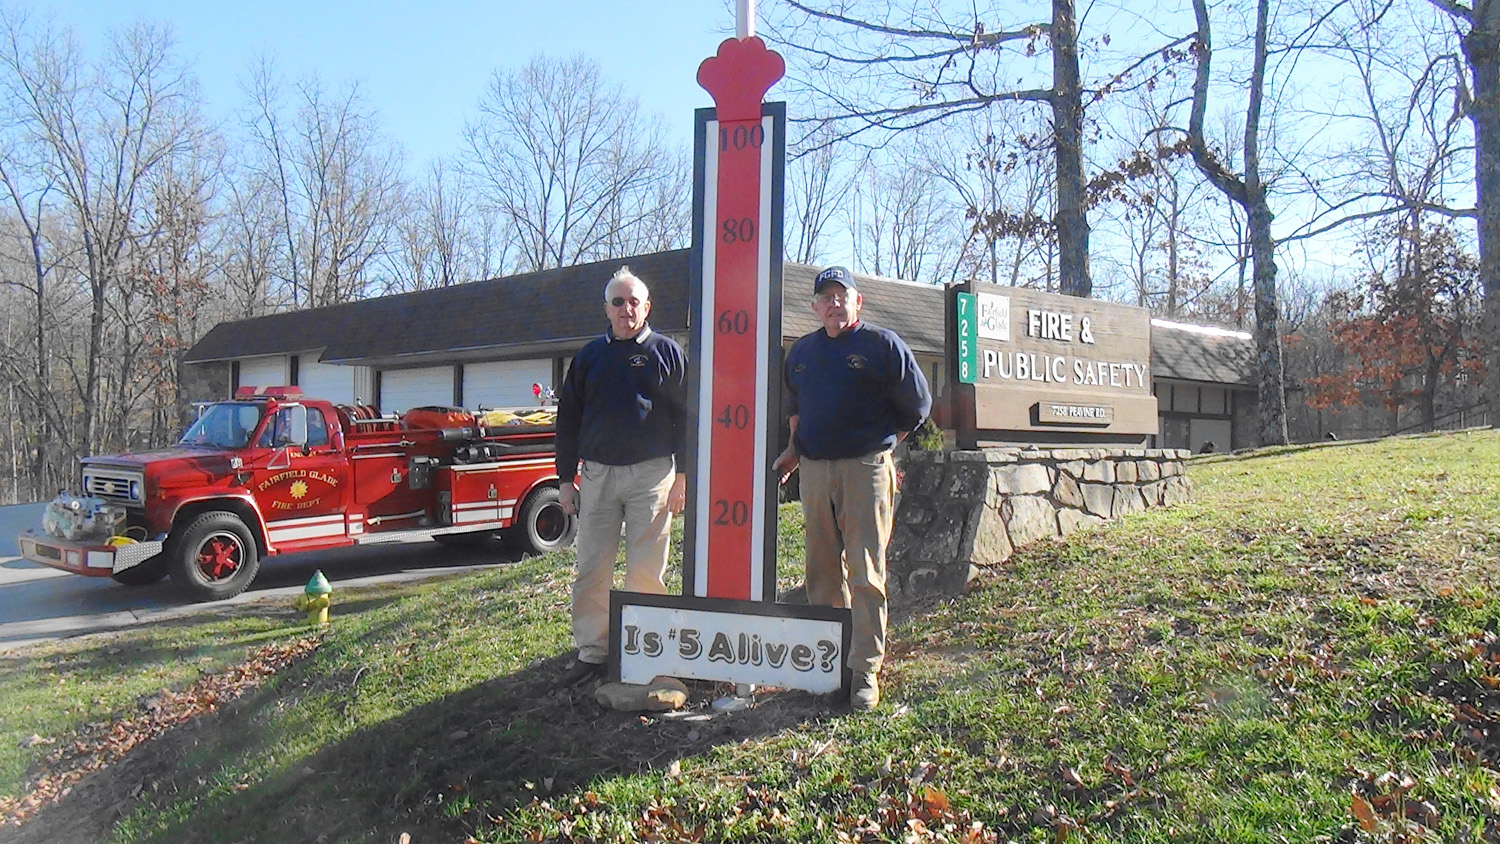 Glade Records Officer Jim Etzel, left, and Fire Chief Howard Robb pose next to the donation tracker displayed on Peavine Road.